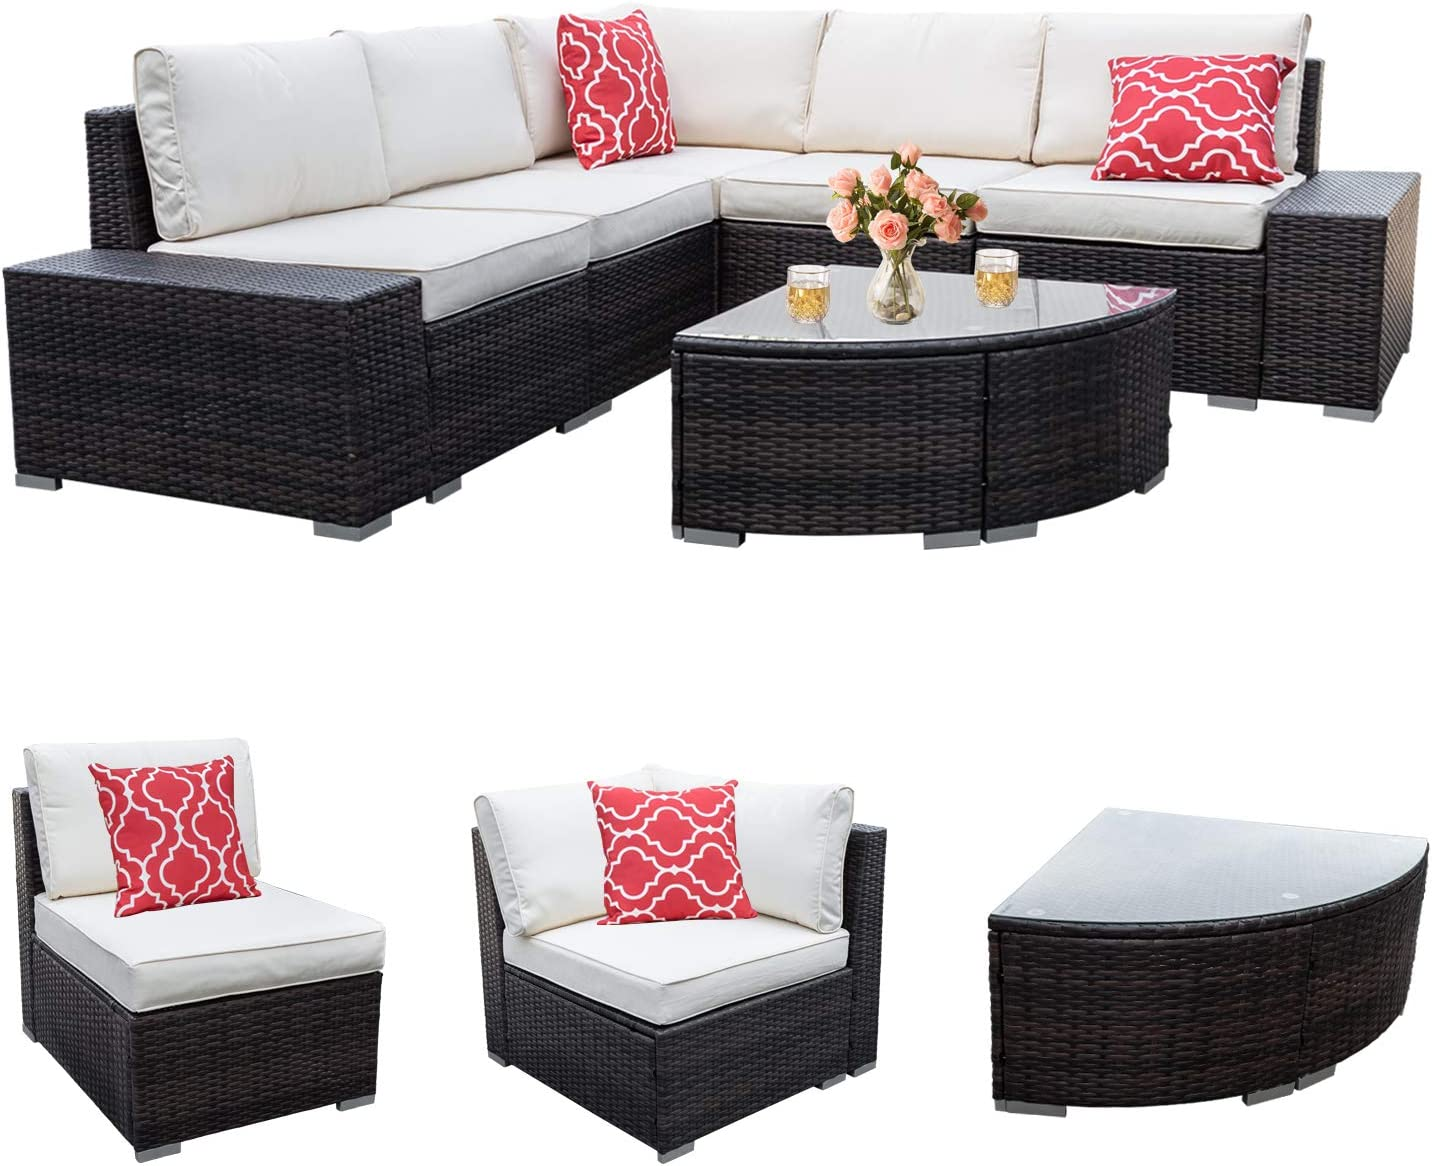 Go Beyond 6 Piece Patio Furniture Sets Outdoor Sectional All Weather Sofa Couch Set, PE Rattan Manual Weaving Wicker Patio Sofa Set & Garden Conversation Set with Cushions and Glass Table (Brown)